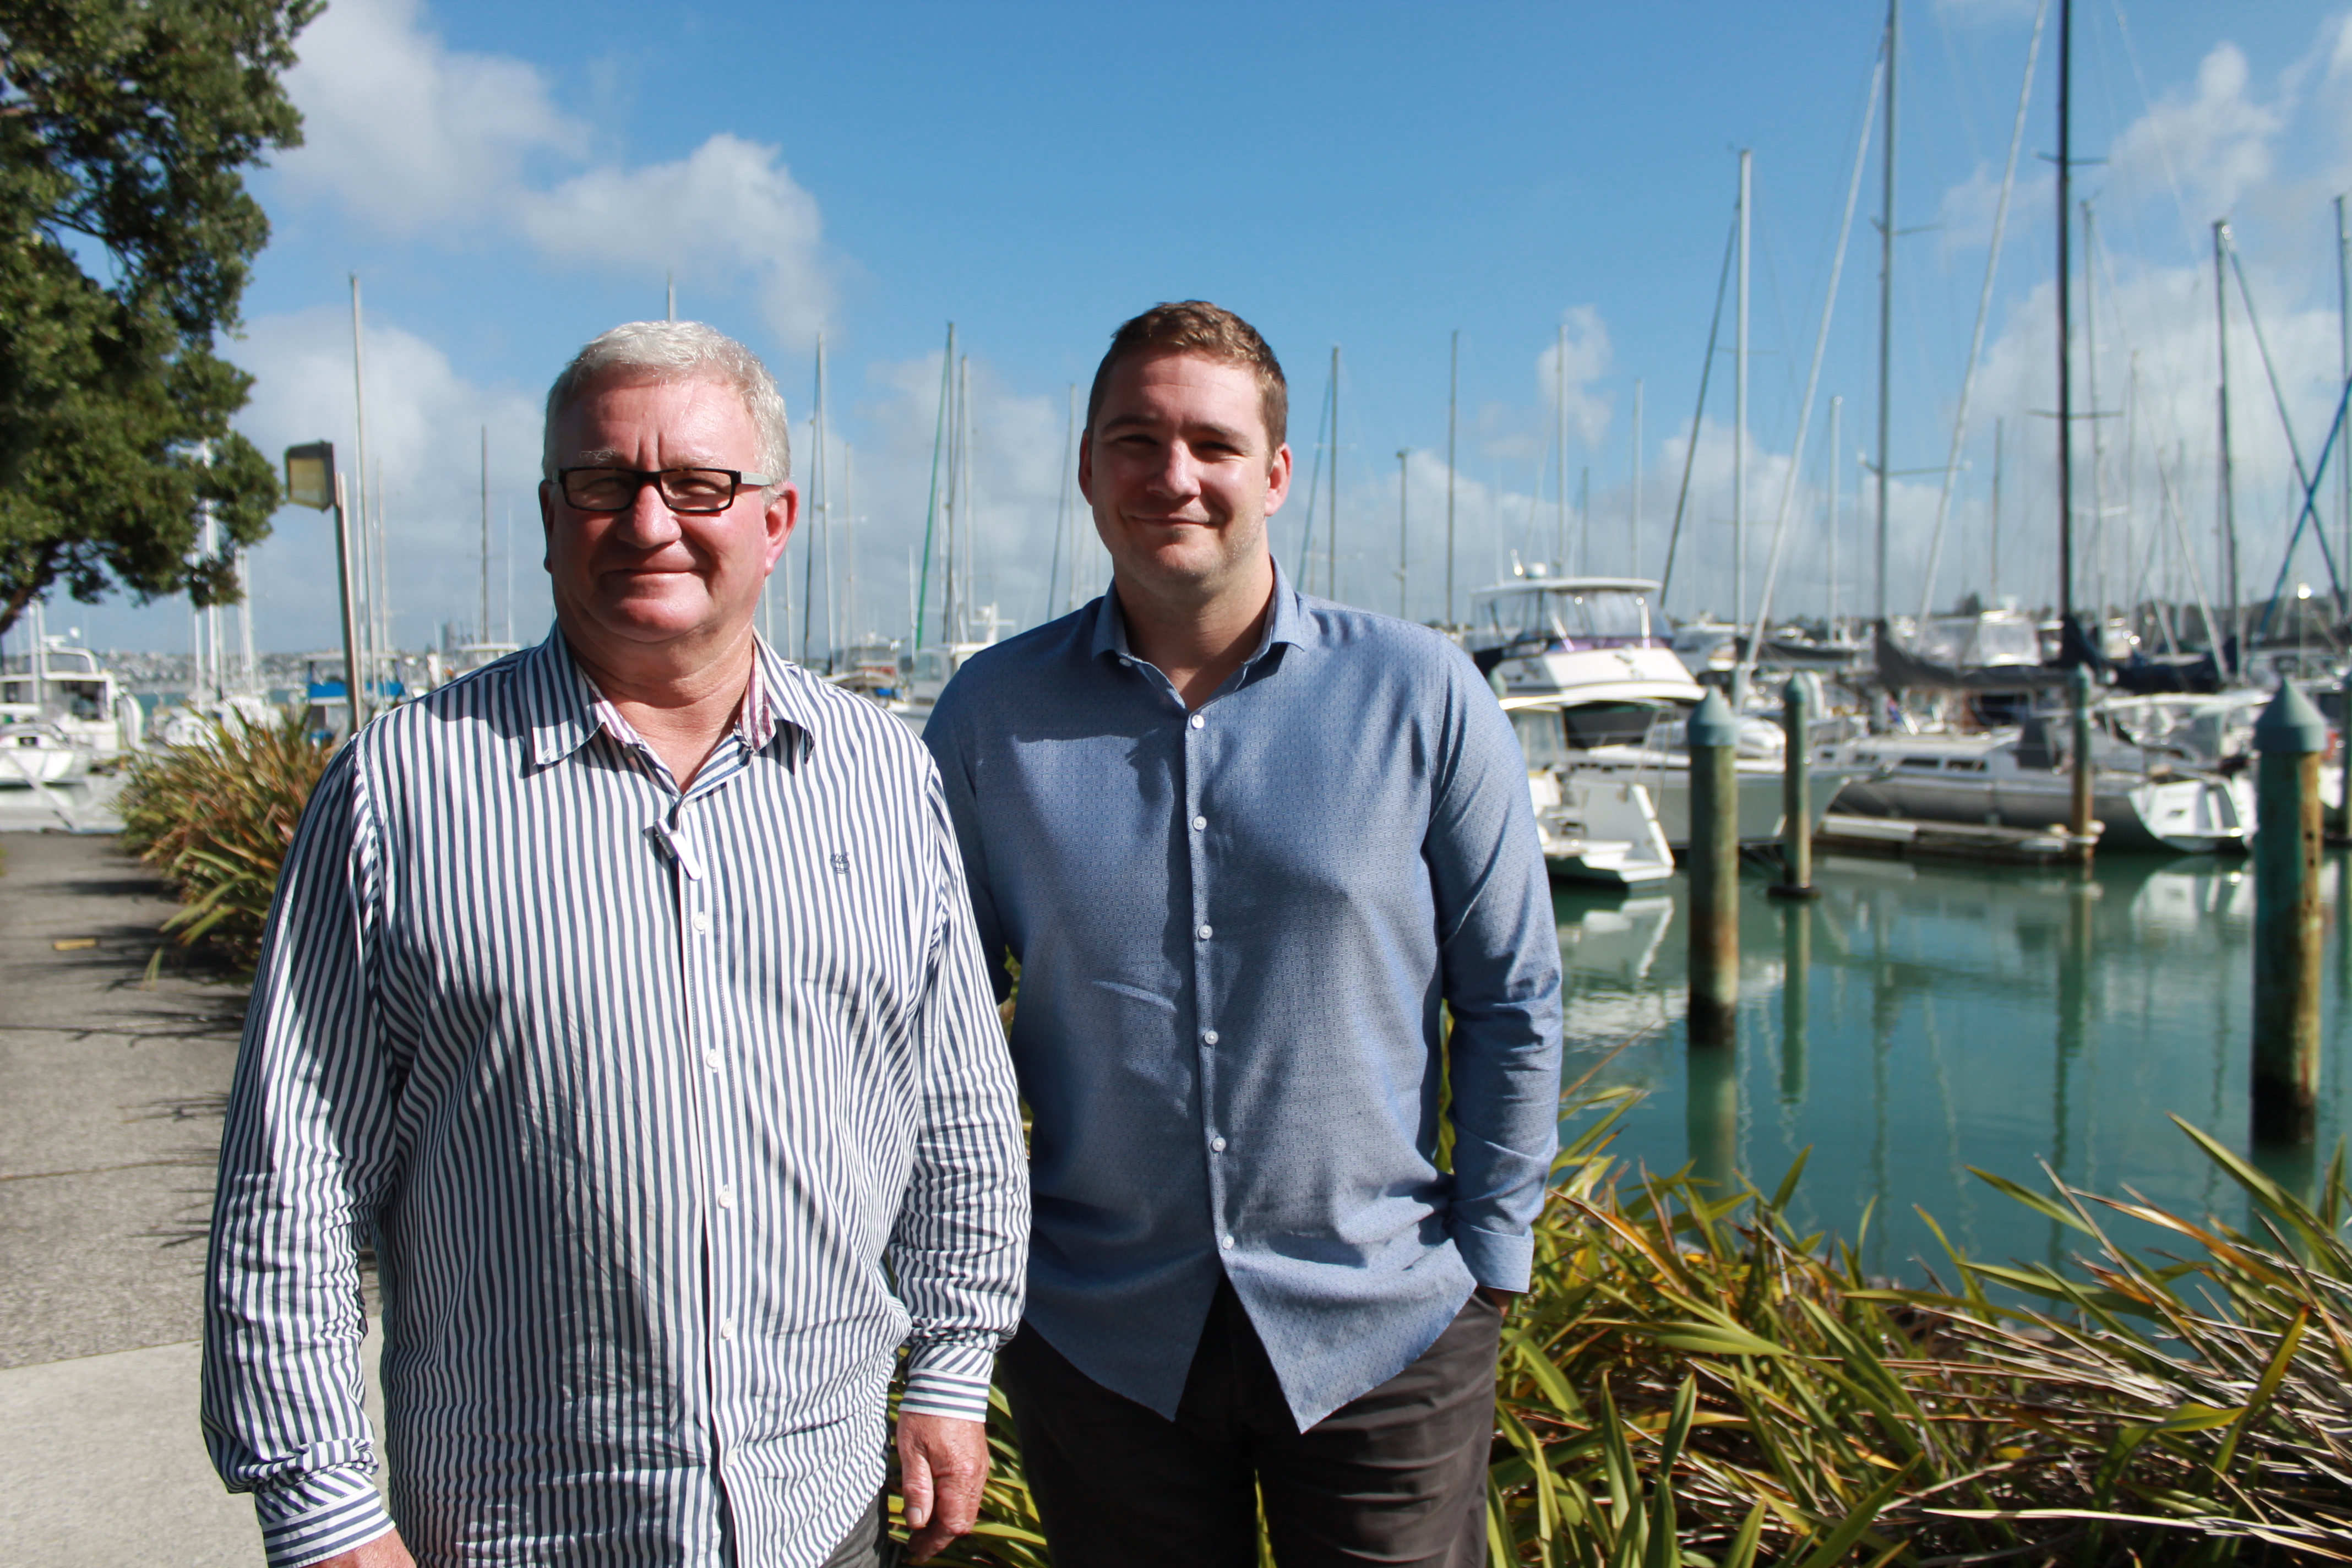 Peter and Will Crispin of New Zealand Boat Paint